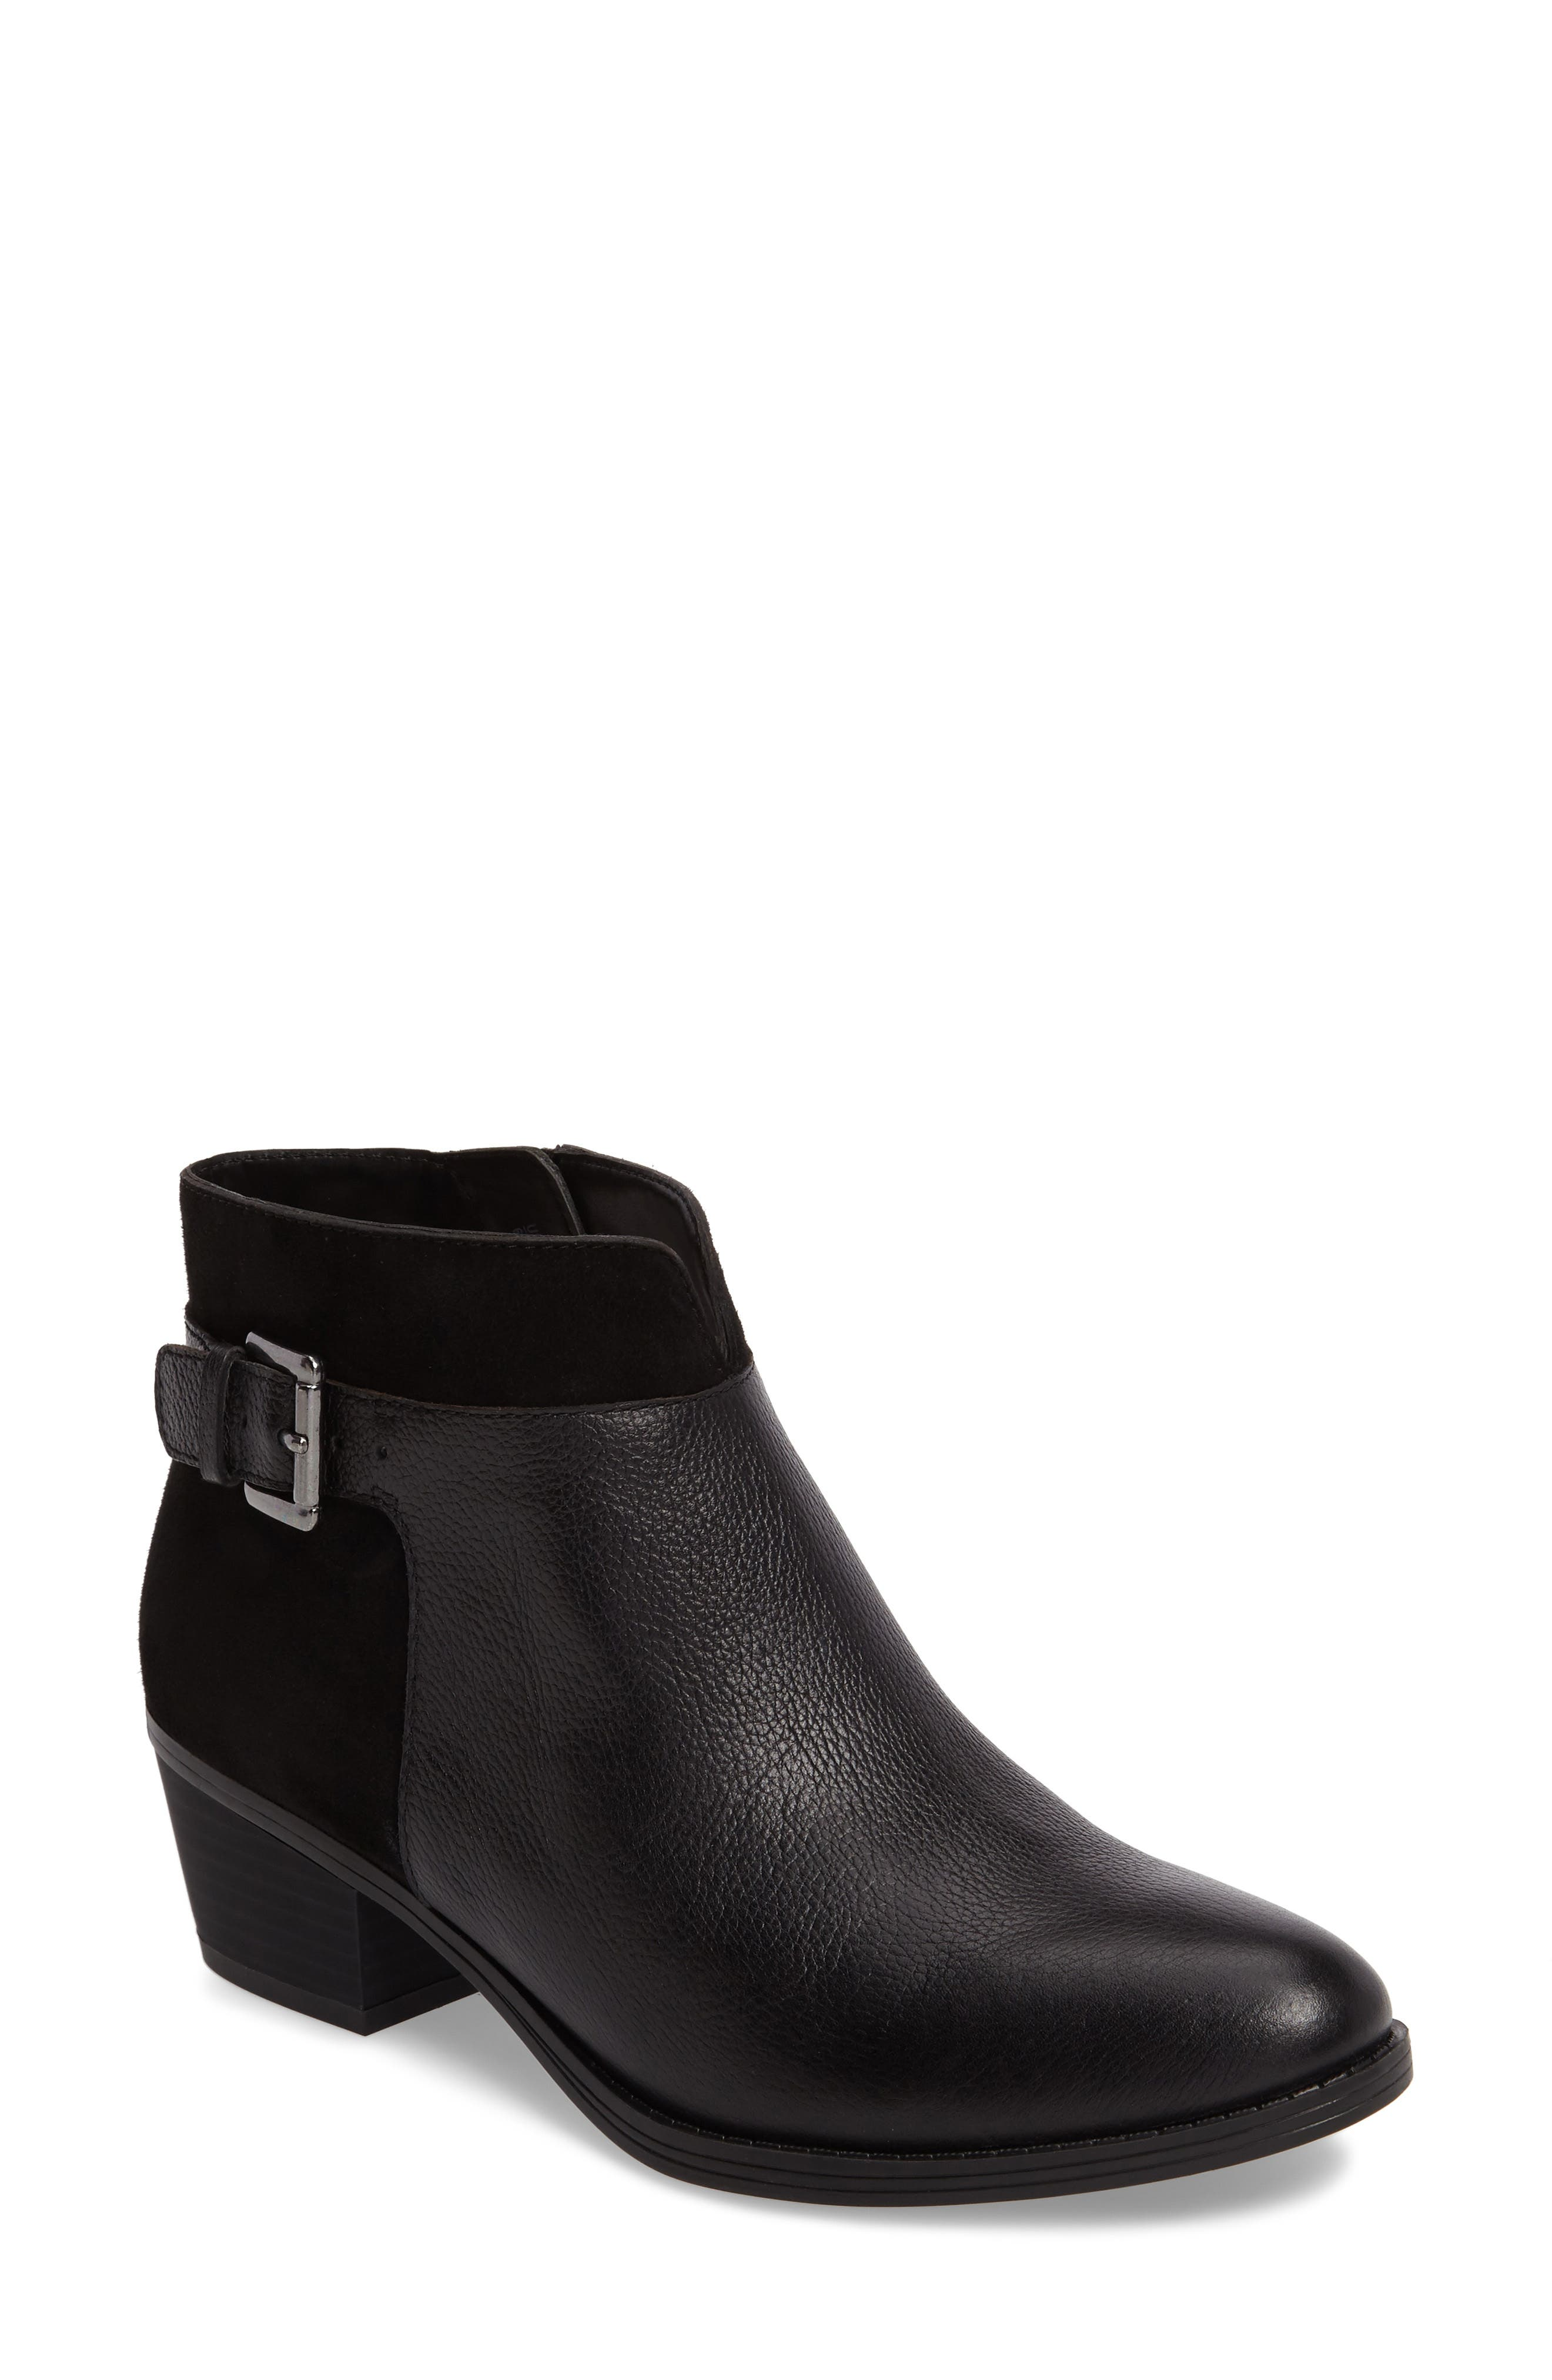 Wanya Buckle Bootie,                             Main thumbnail 1, color,                             Black Leather